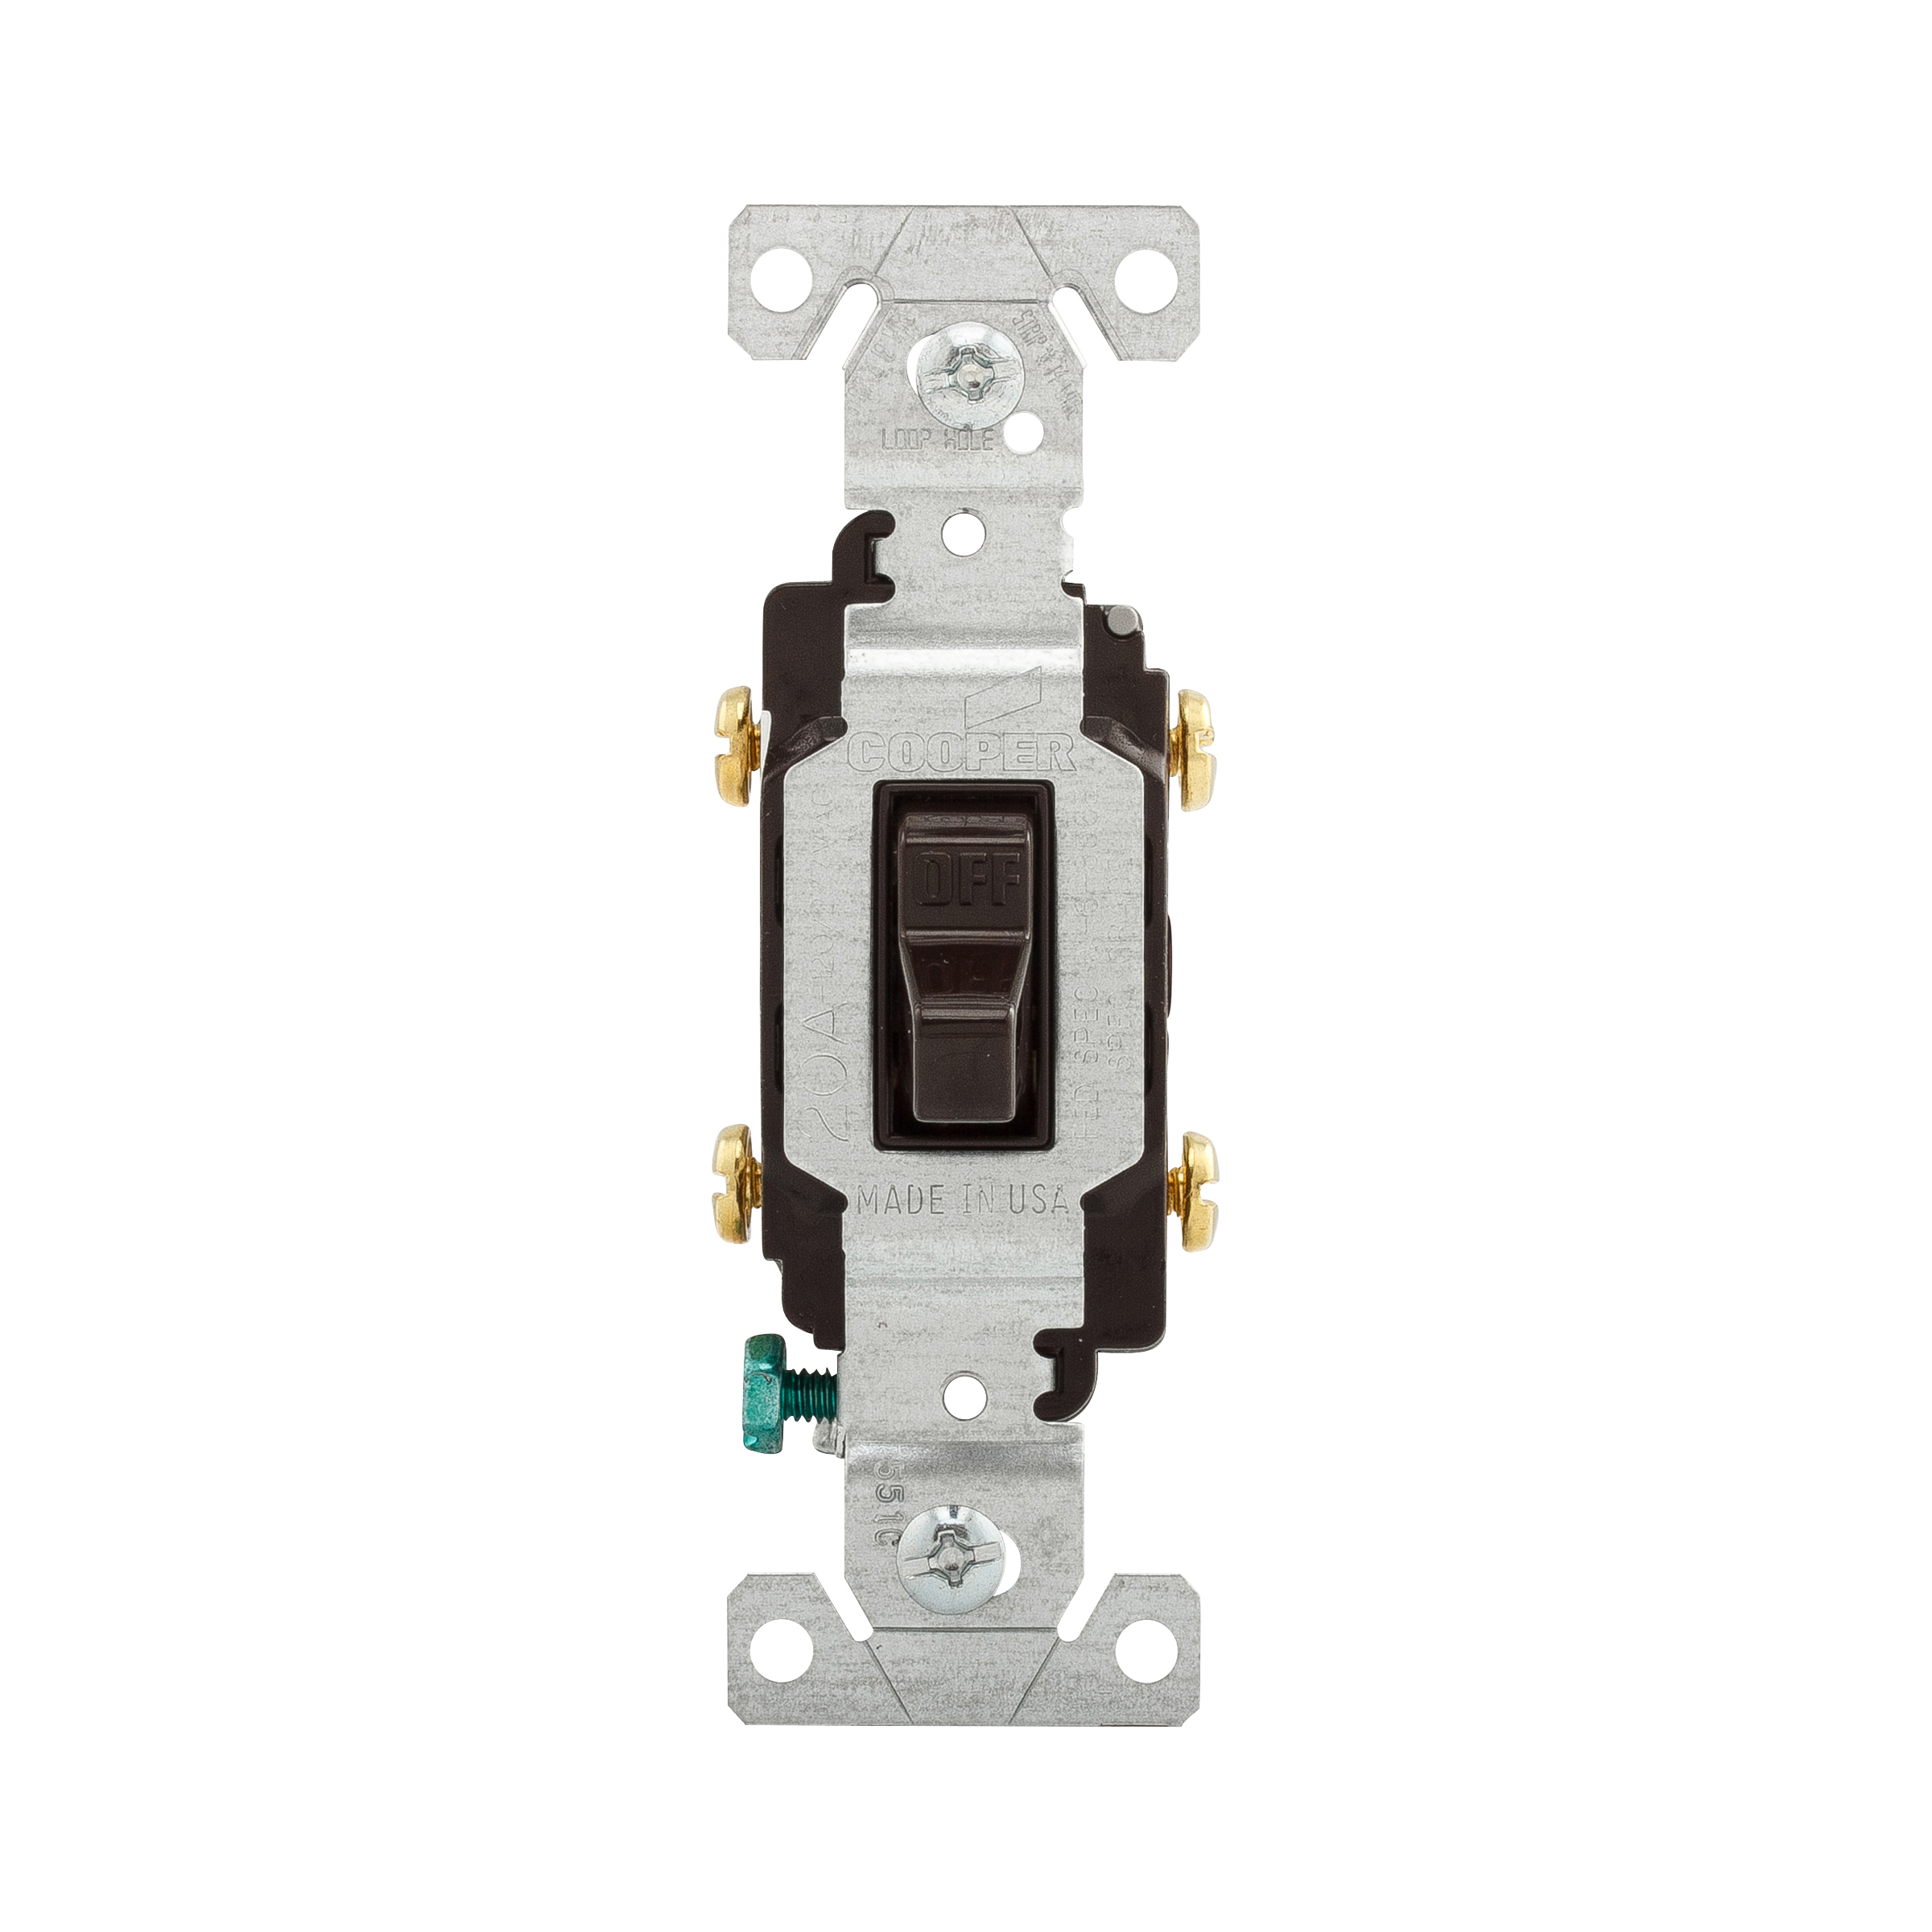 COOPER WIRING DEVICES Toggle Switch